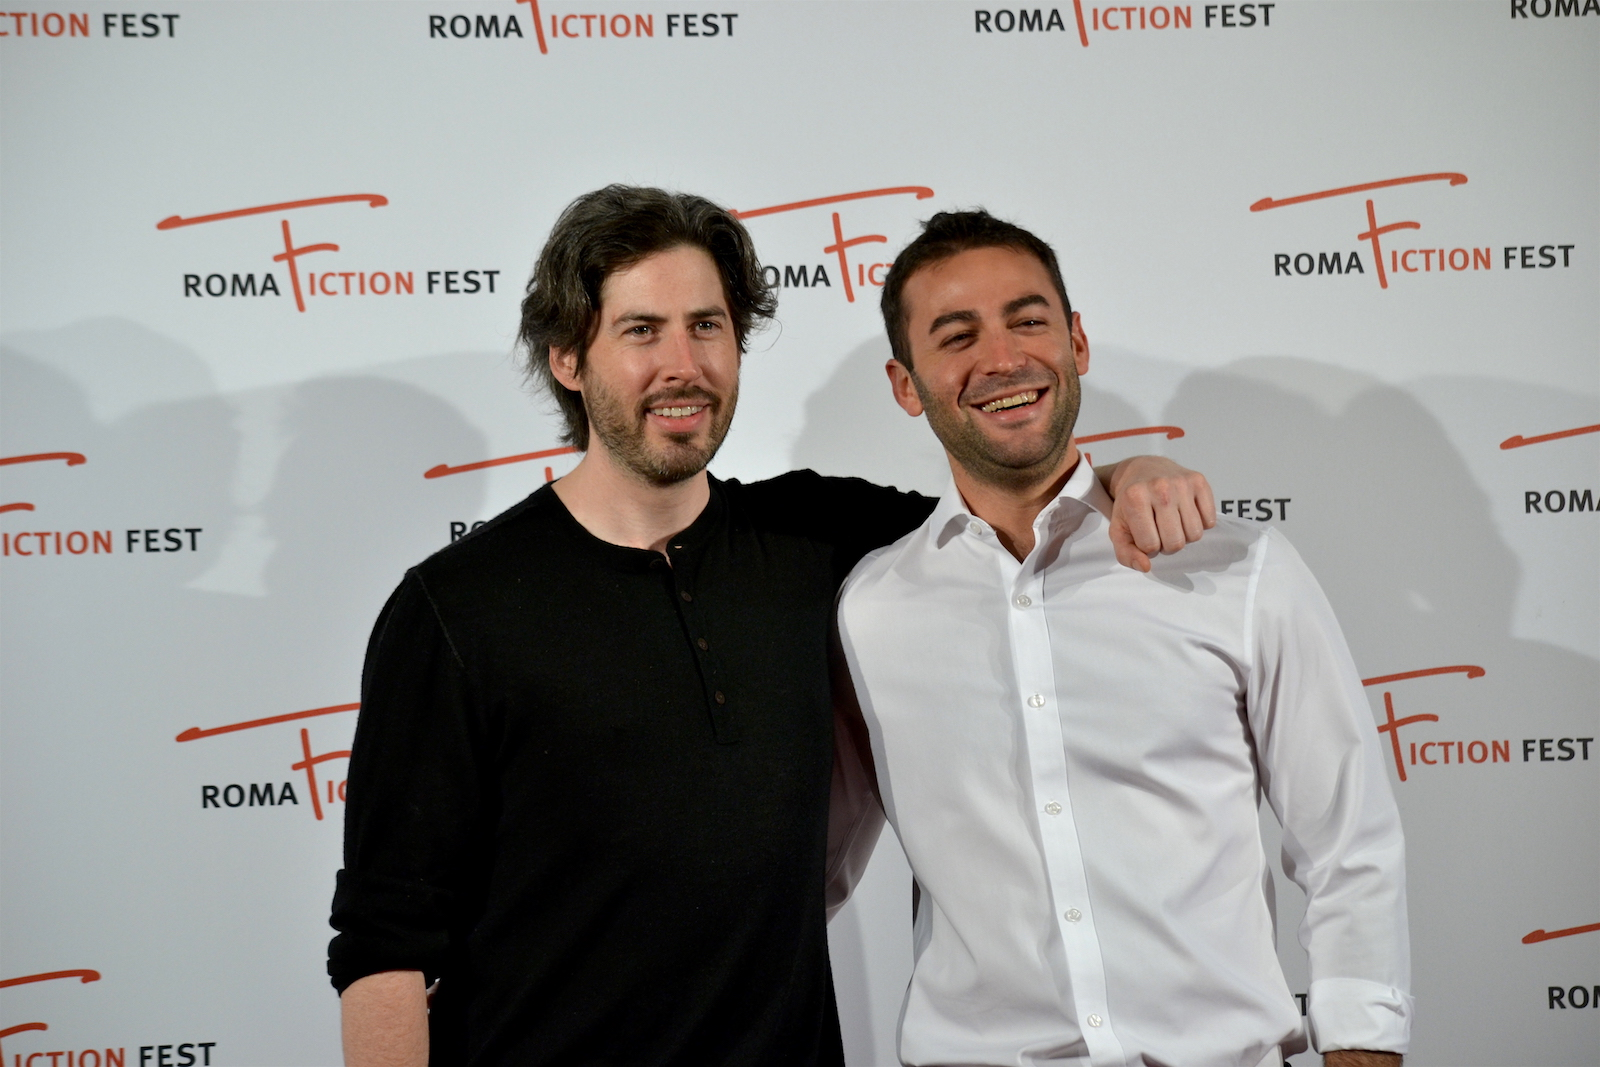 Roma Fiction Fest 2015: Jason Reitman e Zander Lehman prima della Masterclass & Excellence Award